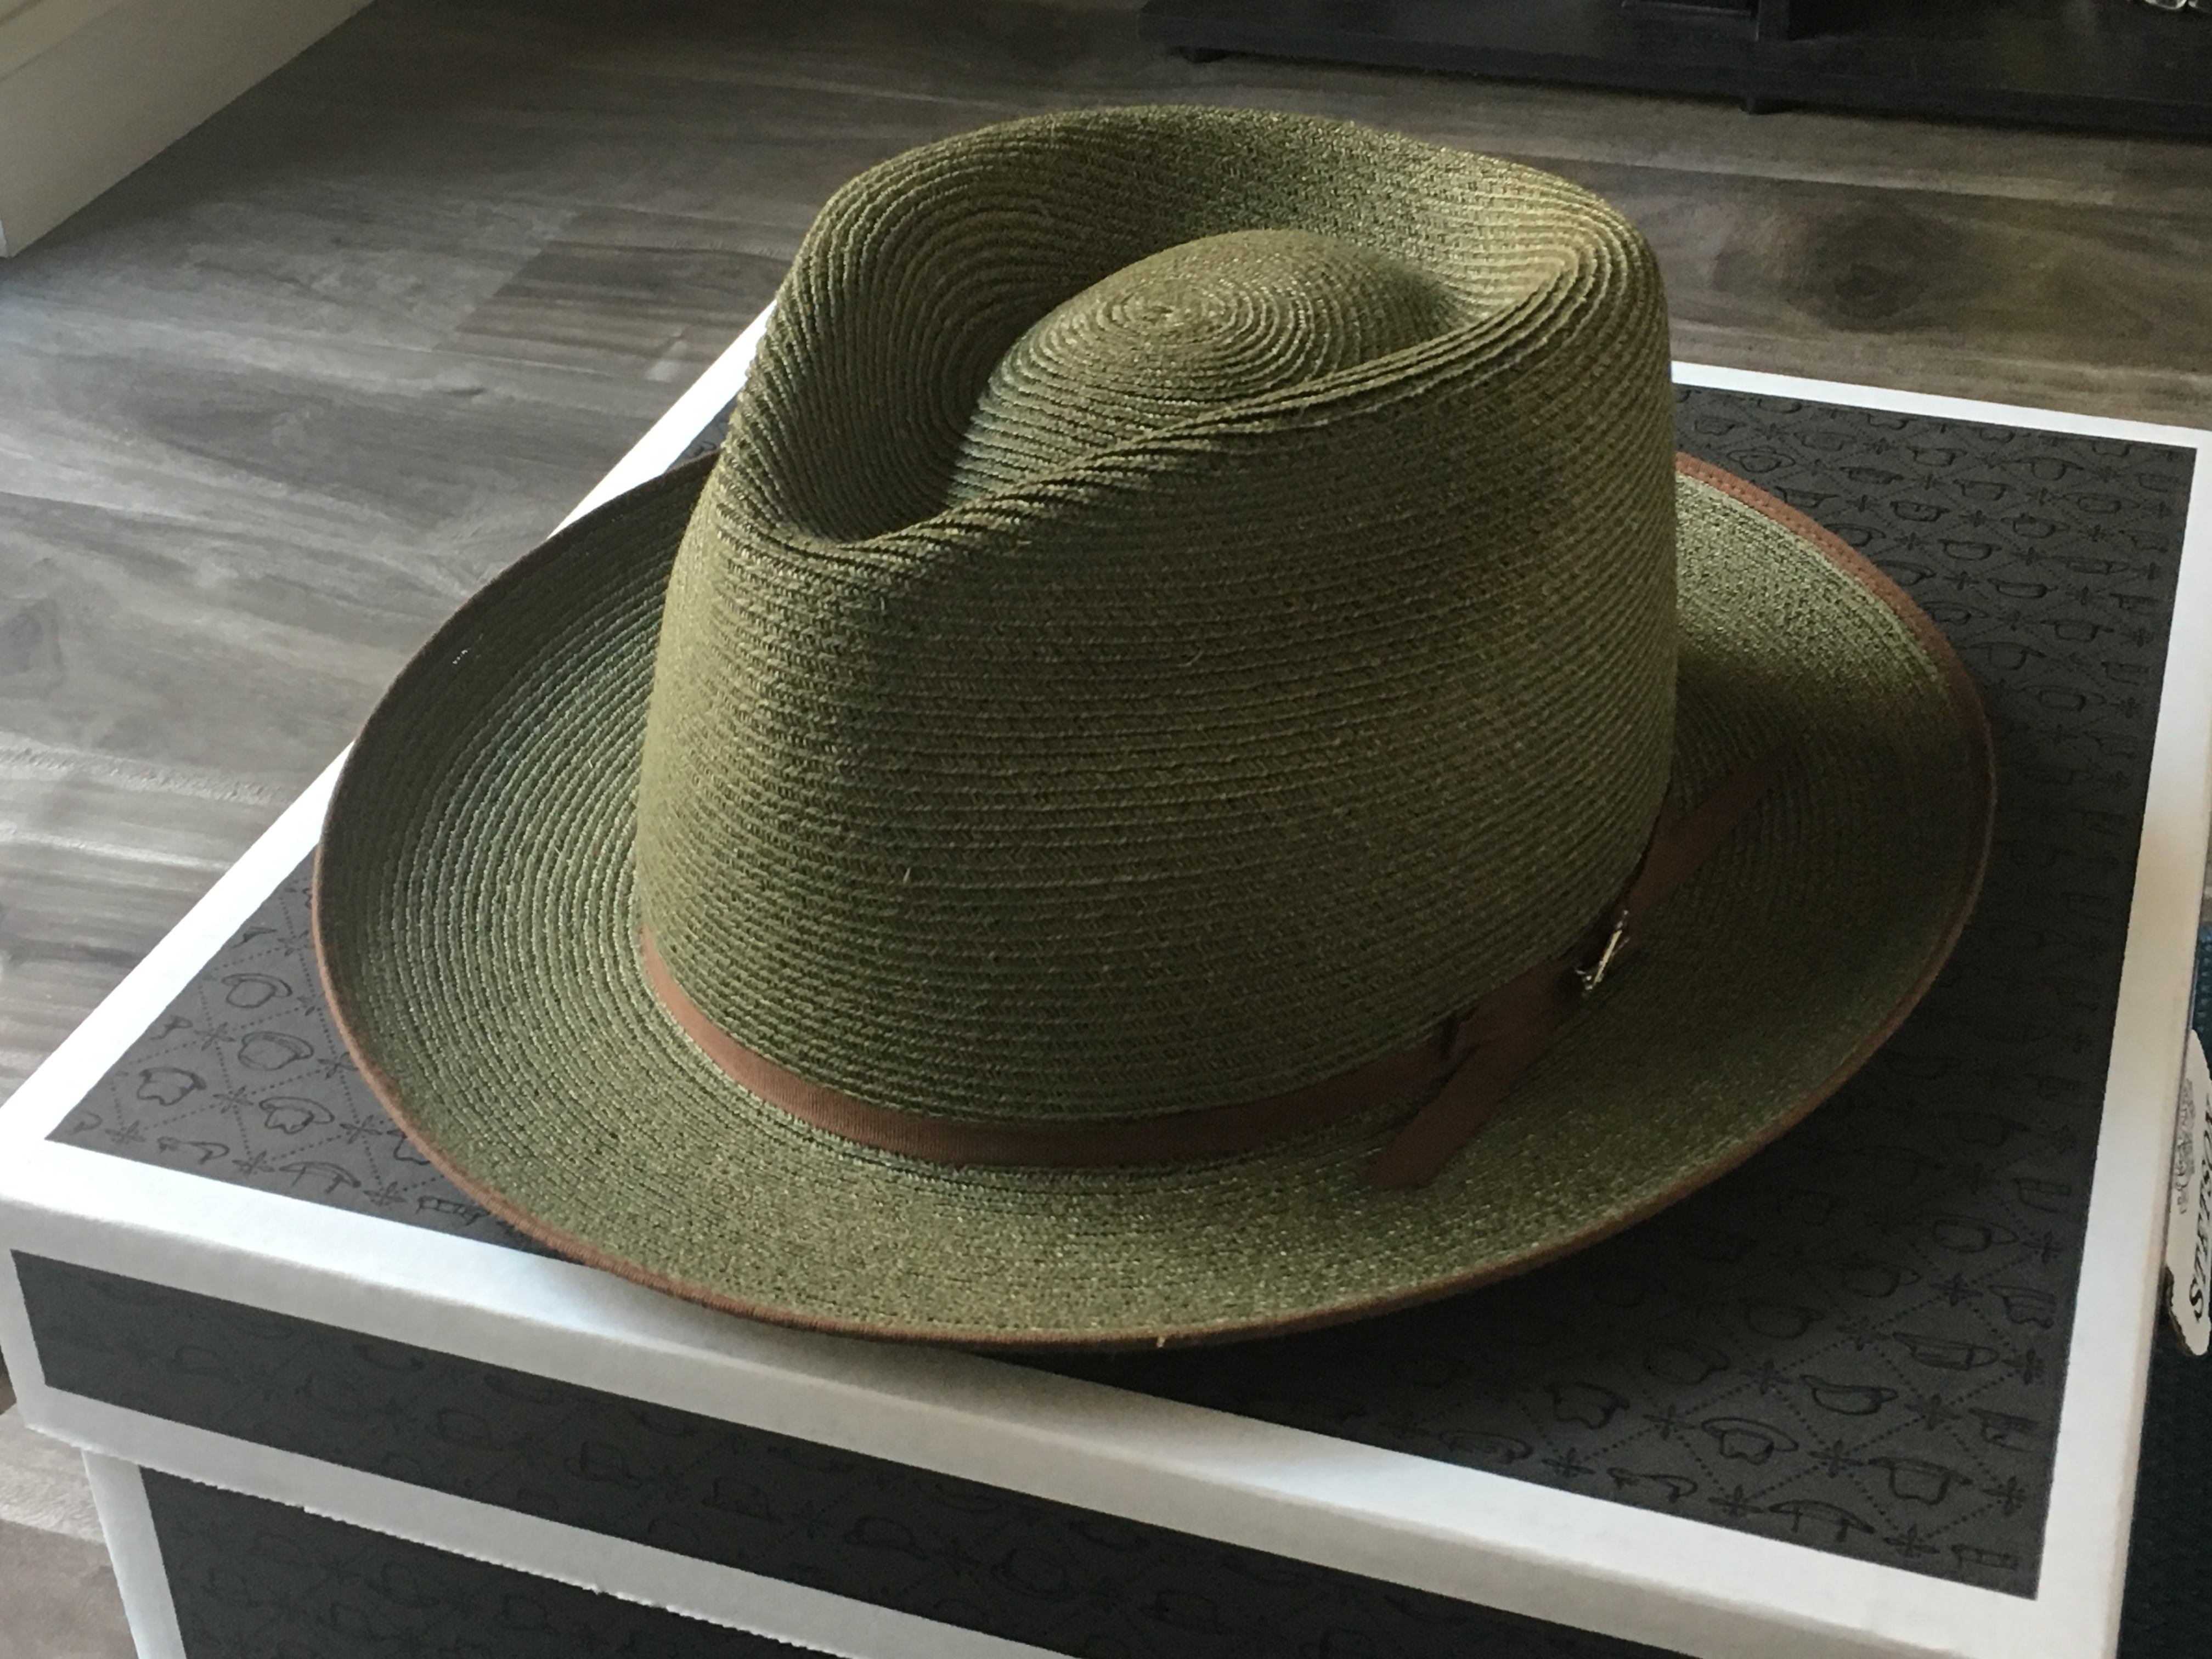 d8ee49d2a FS: Hemp Stetson Stratoliner, Special Edition 7 5/8   The Fedora Lounge